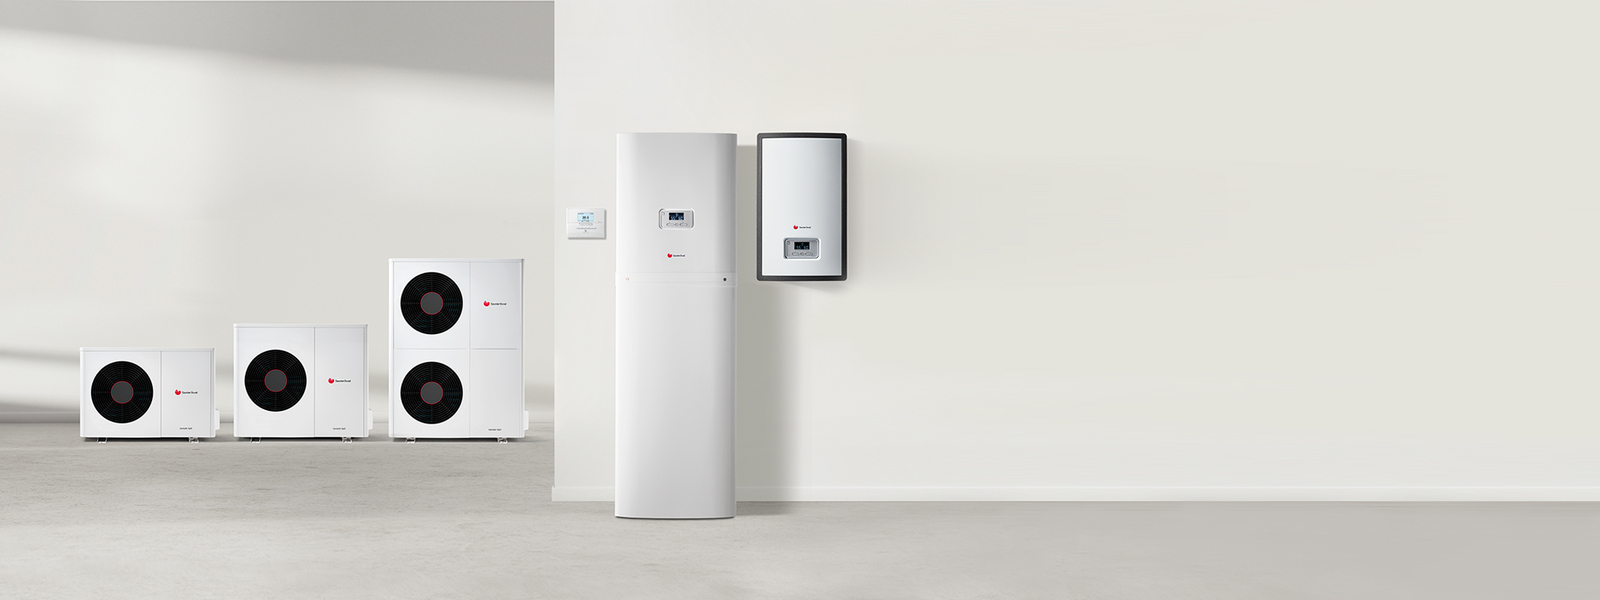 //www.saunierduval.hu/media-master/global-media/sdbg/communication-portfolio/heat-pump-b2c-content/awhp-split-range-product-beauty-2232x837-2-1169792-format-24-9@1600@desktop.jpg